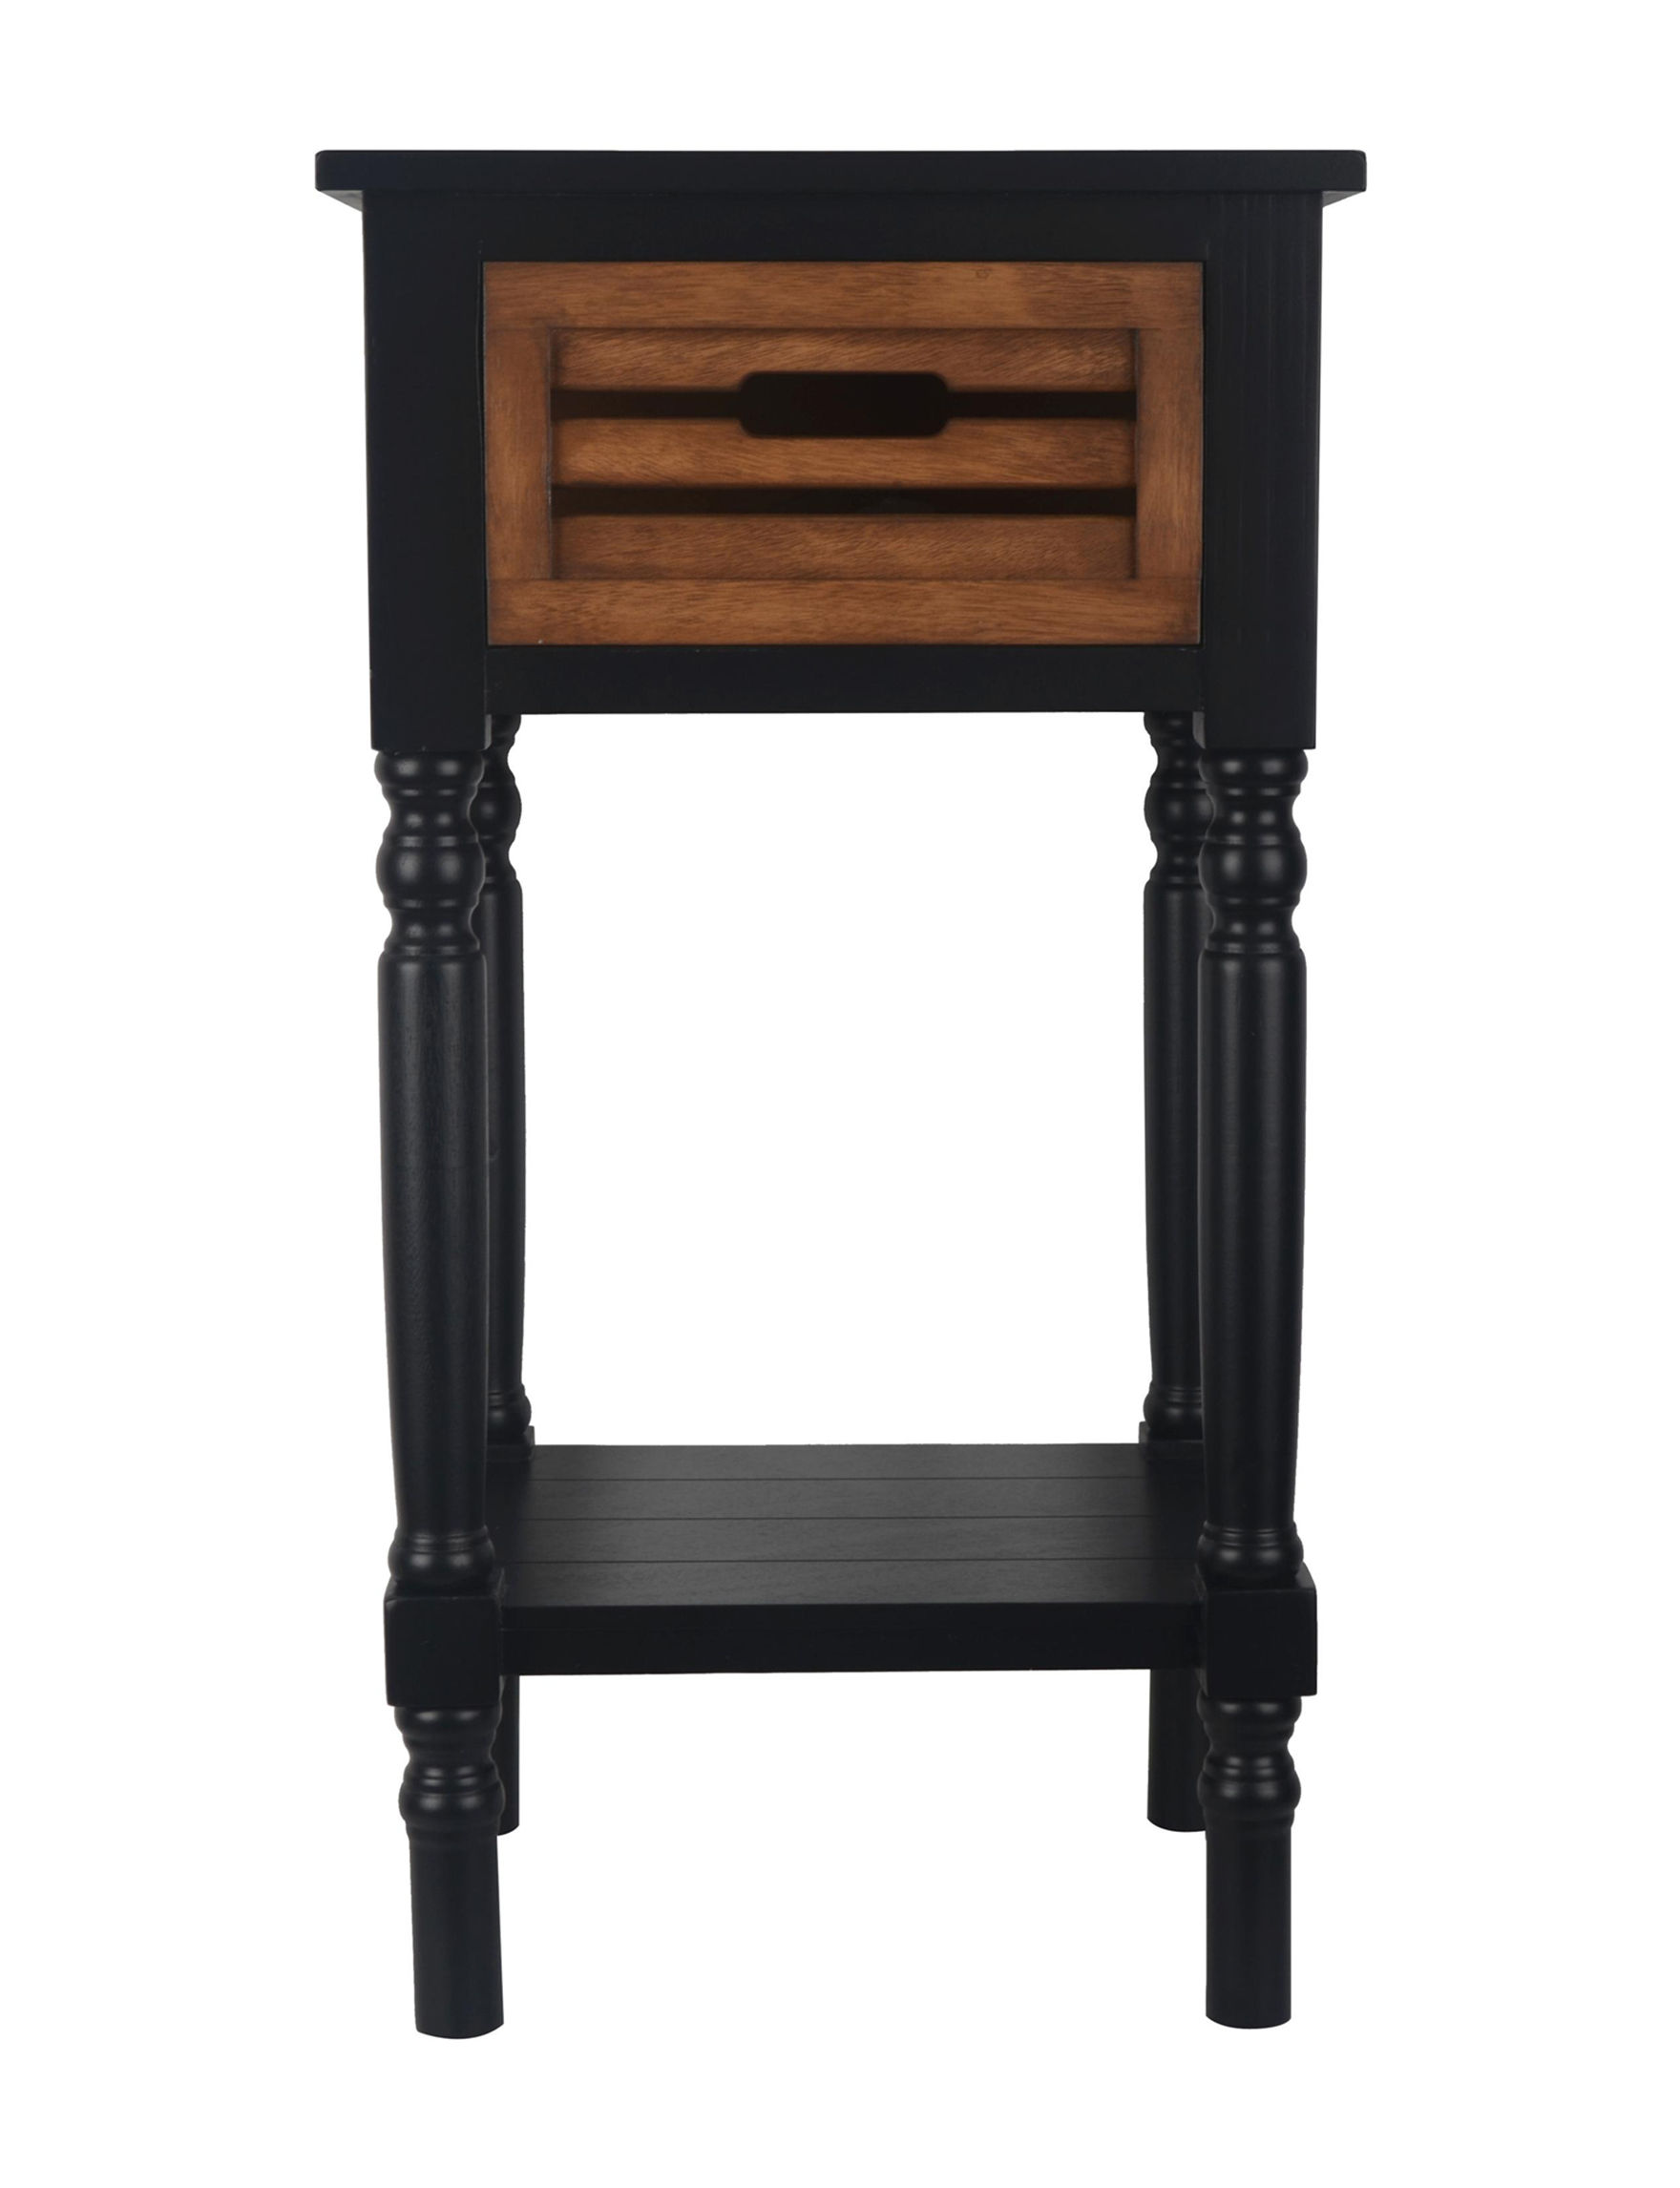 Decor Therapy Black / Brown Accent & End Tables Night Stands Bedroom Furniture Entryway Furniture Home Office Furniture Living Room Furniture